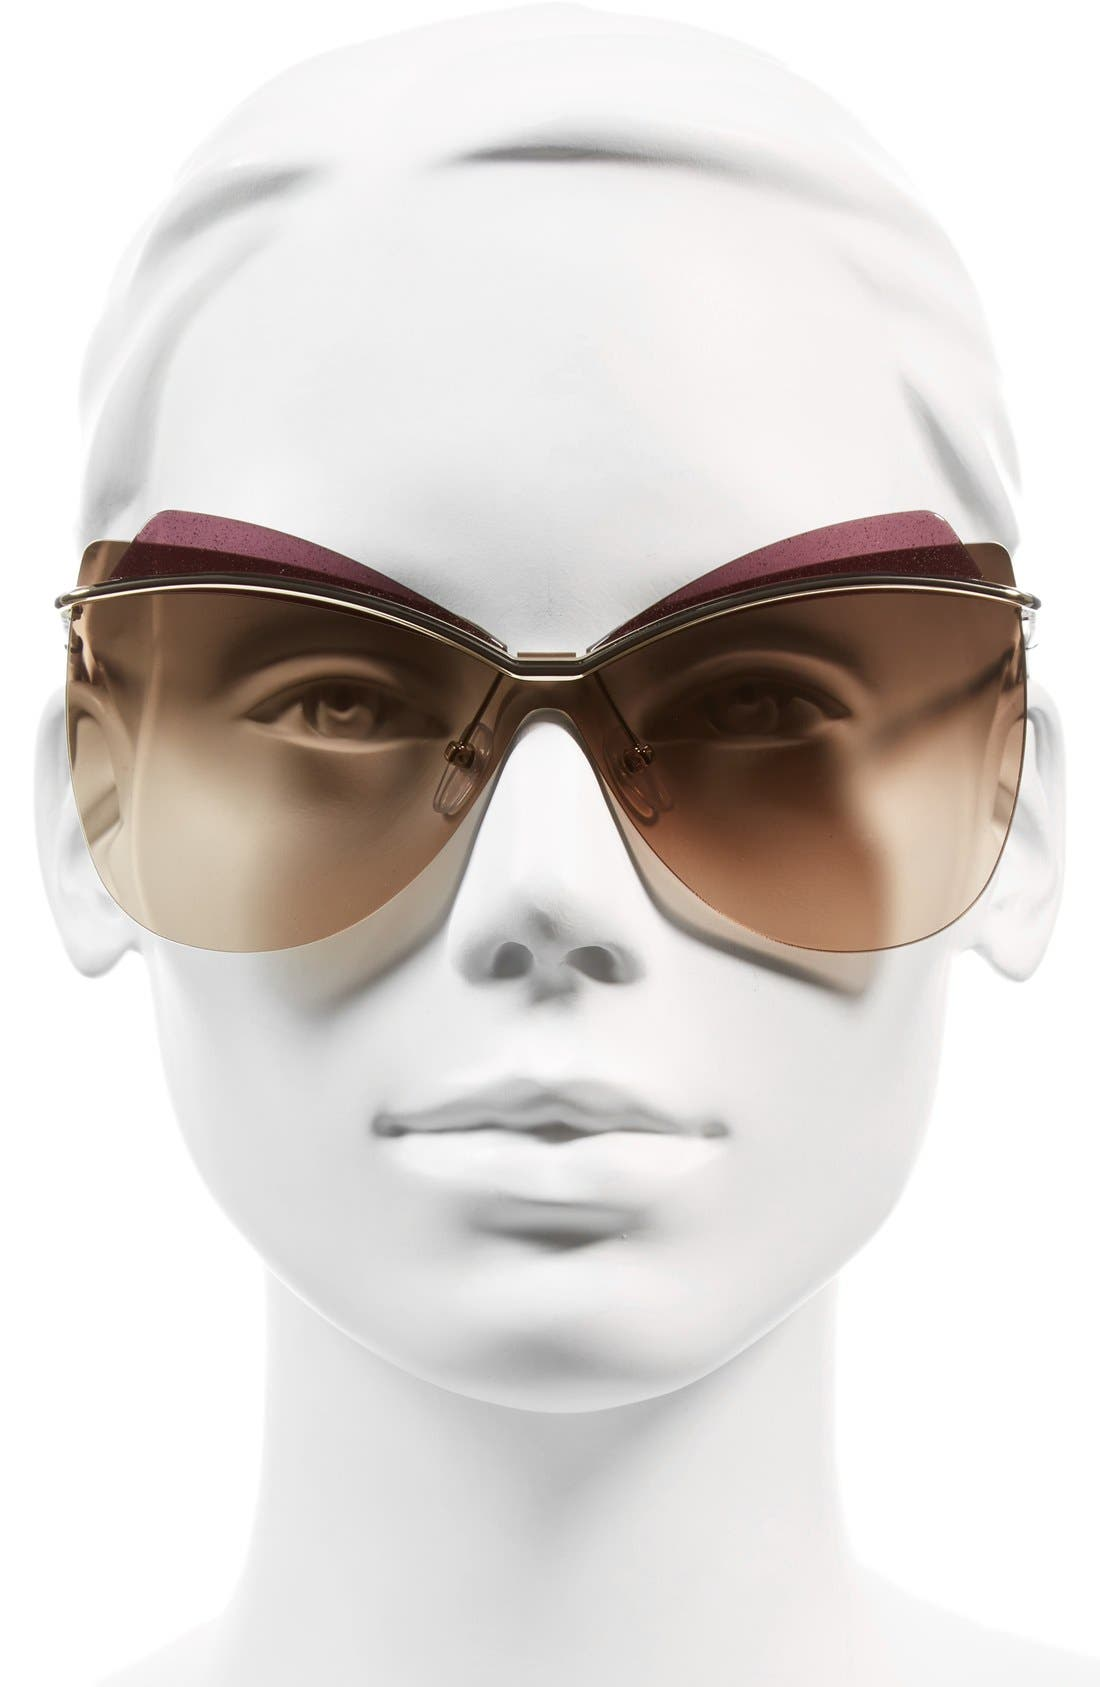 67mm Sunglasses,                             Alternate thumbnail 2, color,                             Light Gold